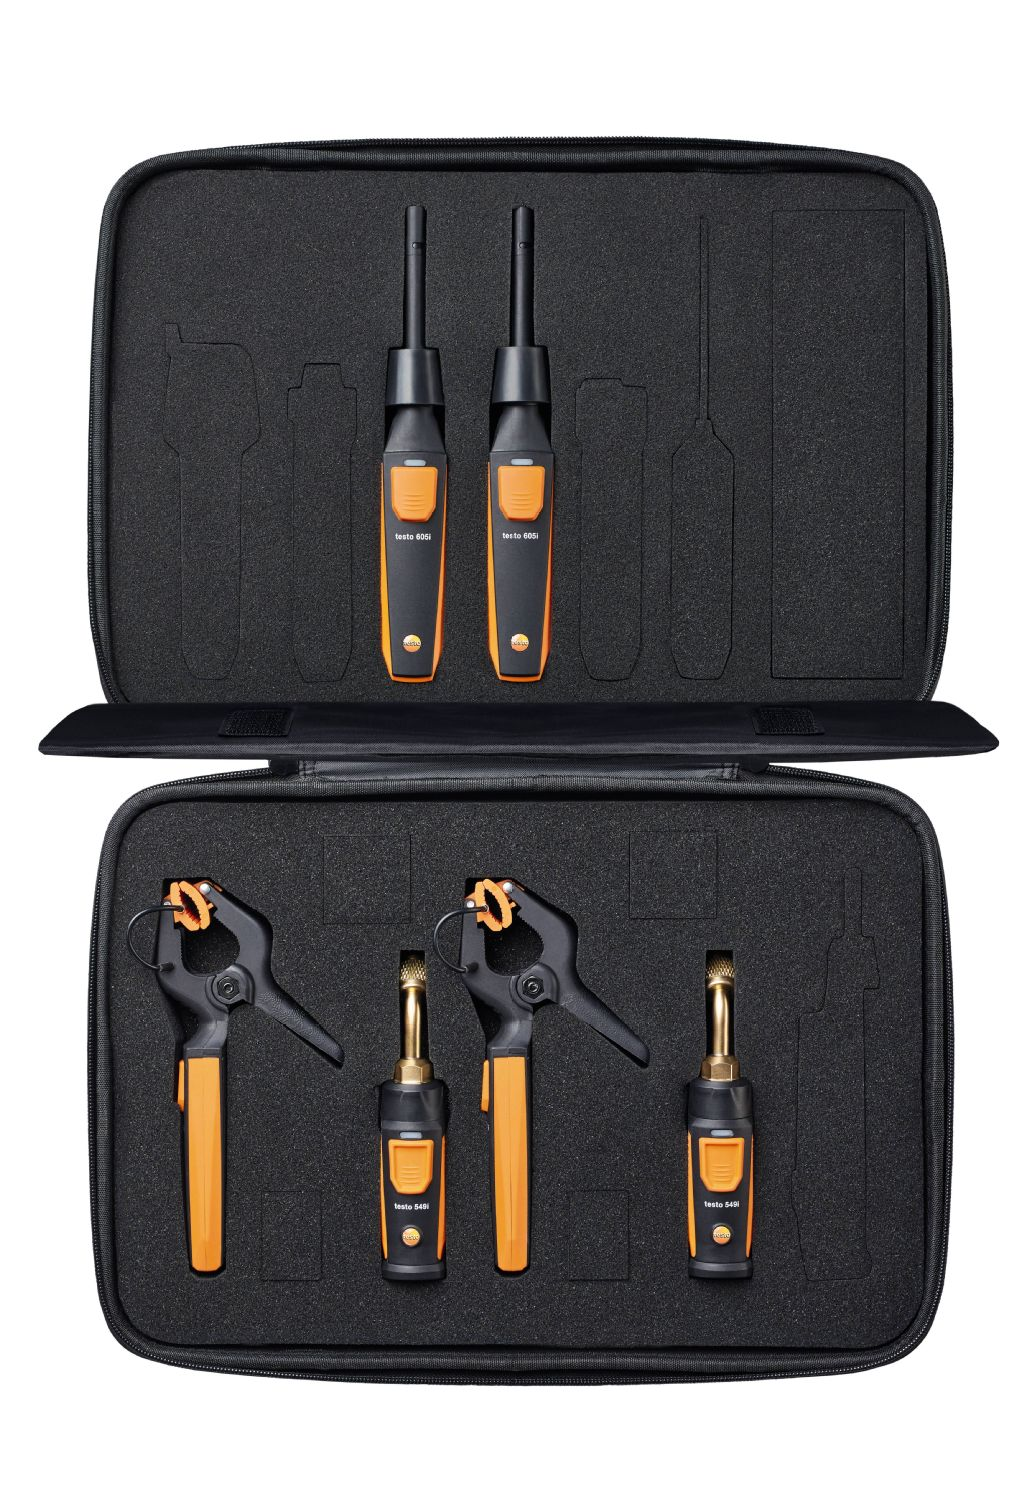 testo Smart Probes AC & Refrigeration Test & Load Kit Plus delivery